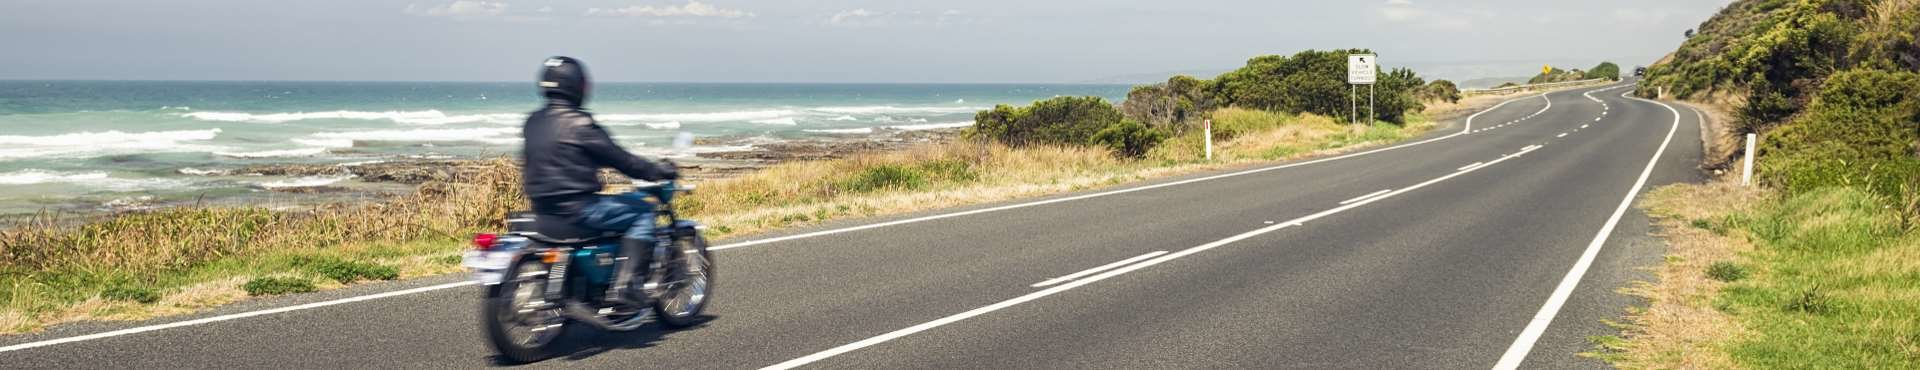 Motorcyclist on an open road | Shine Lawyers